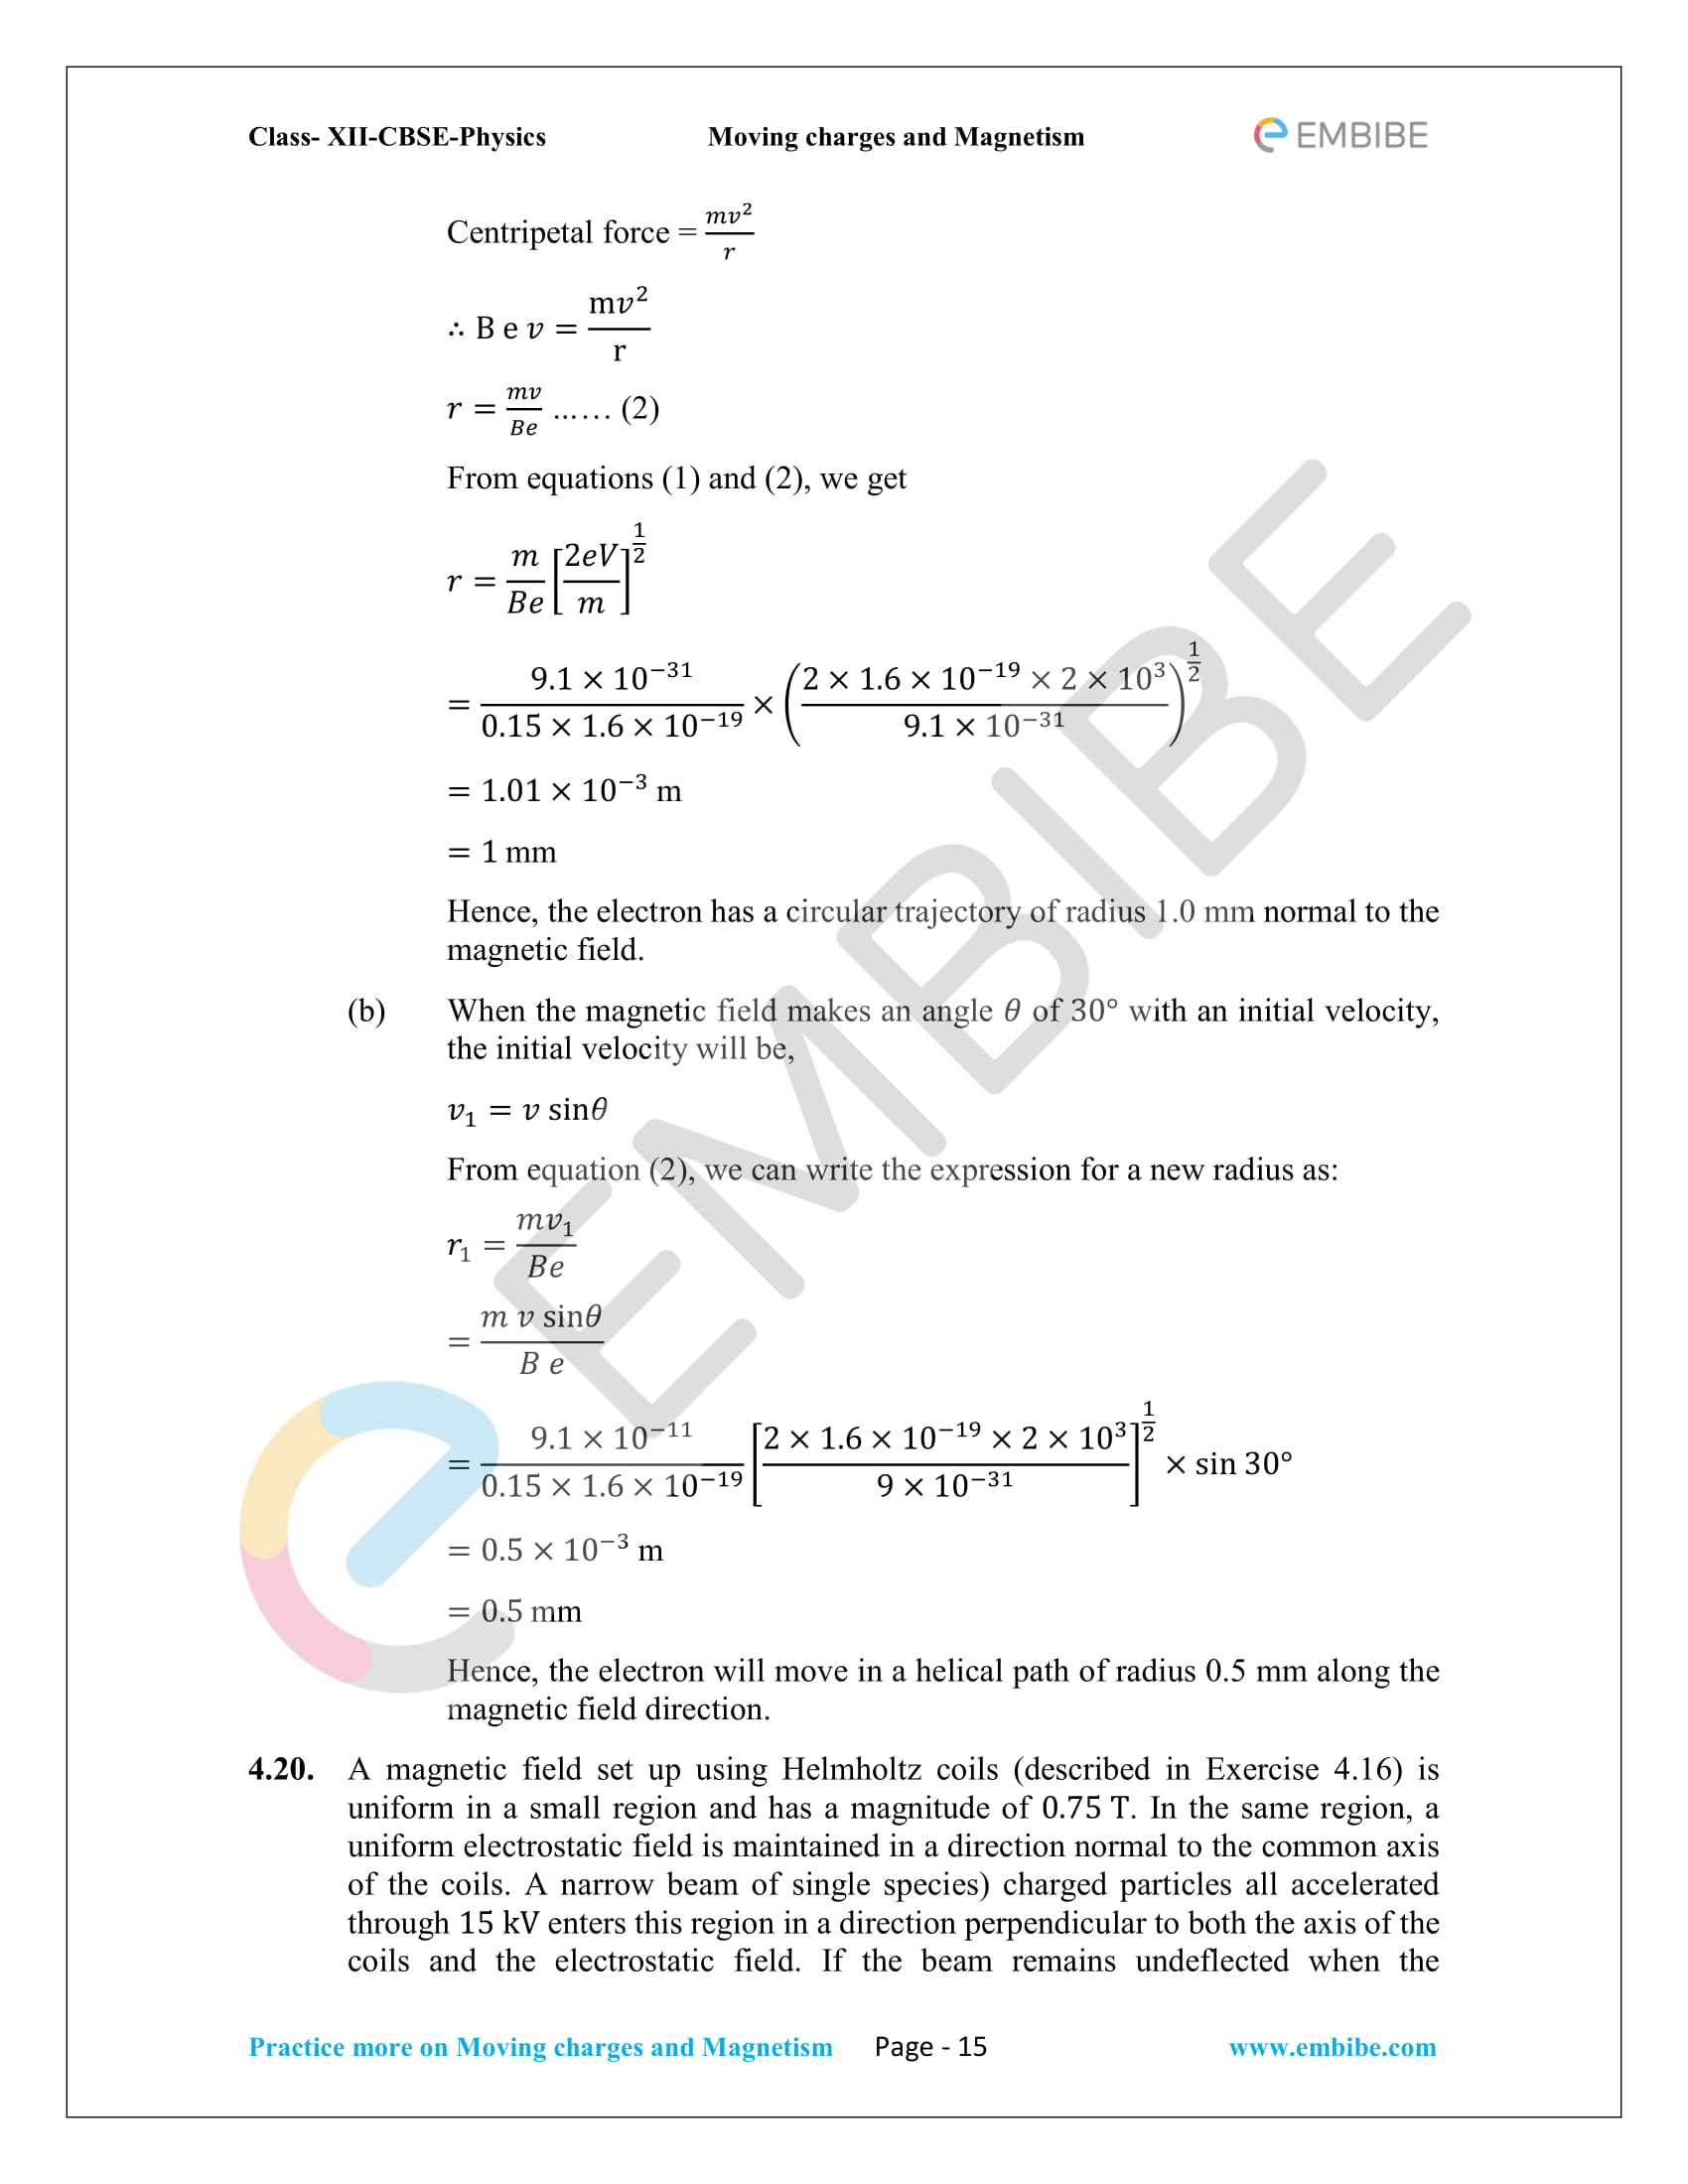 NCERT_Grade 12_Physics_Ch_04_Moving Charges and Magnetism-15